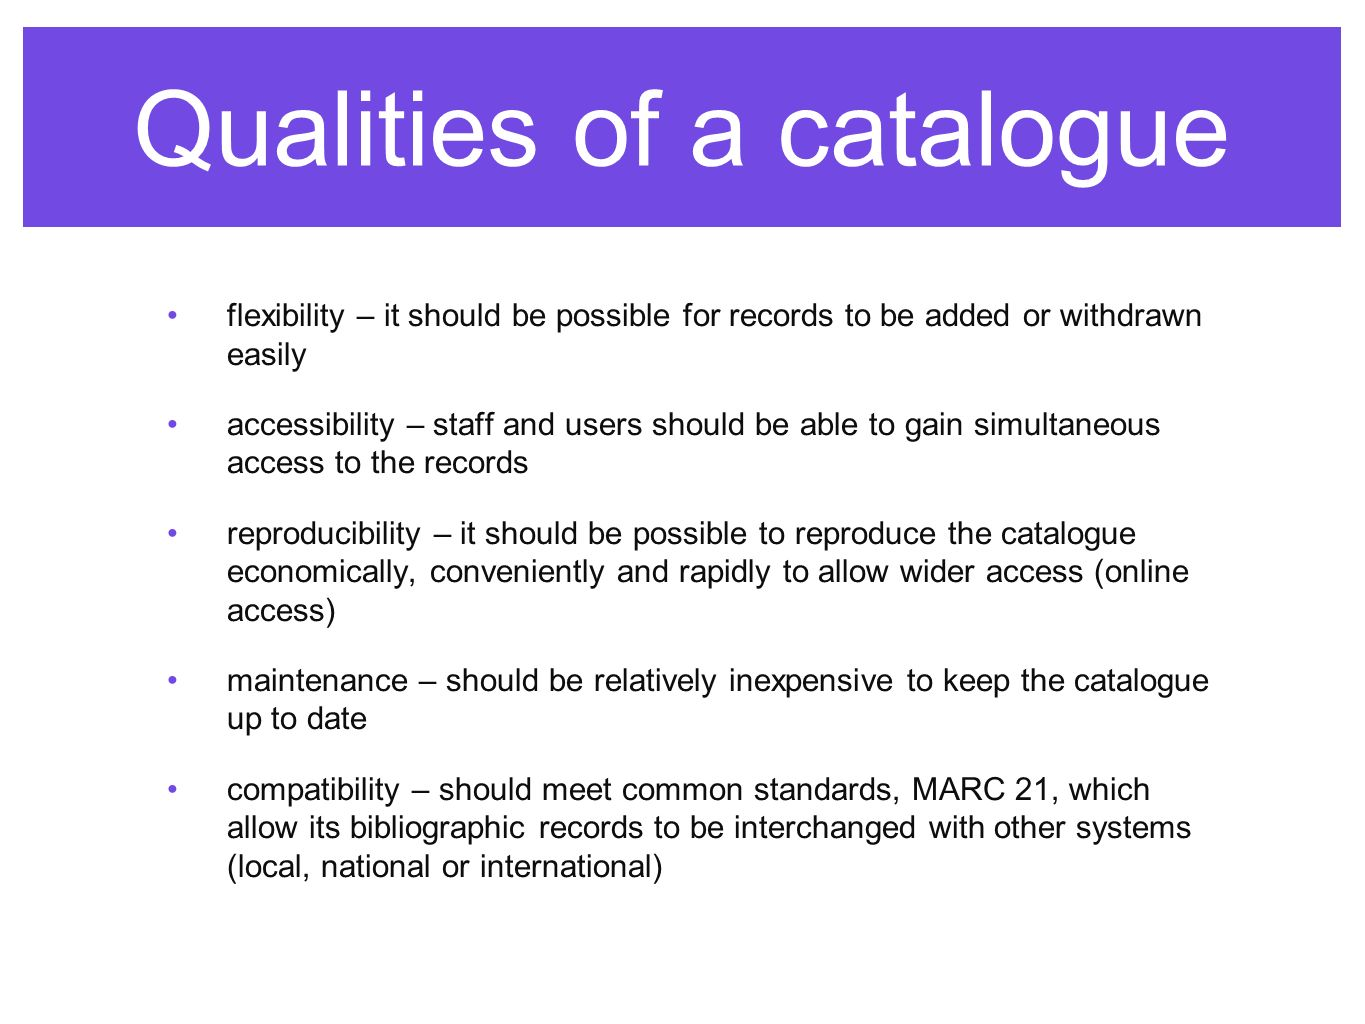 A catalogue should be: a finding tool; a bibliographic tool for assembling groups of works under uniform headings; a supplement to classification; an inventory of stock (incidental function)